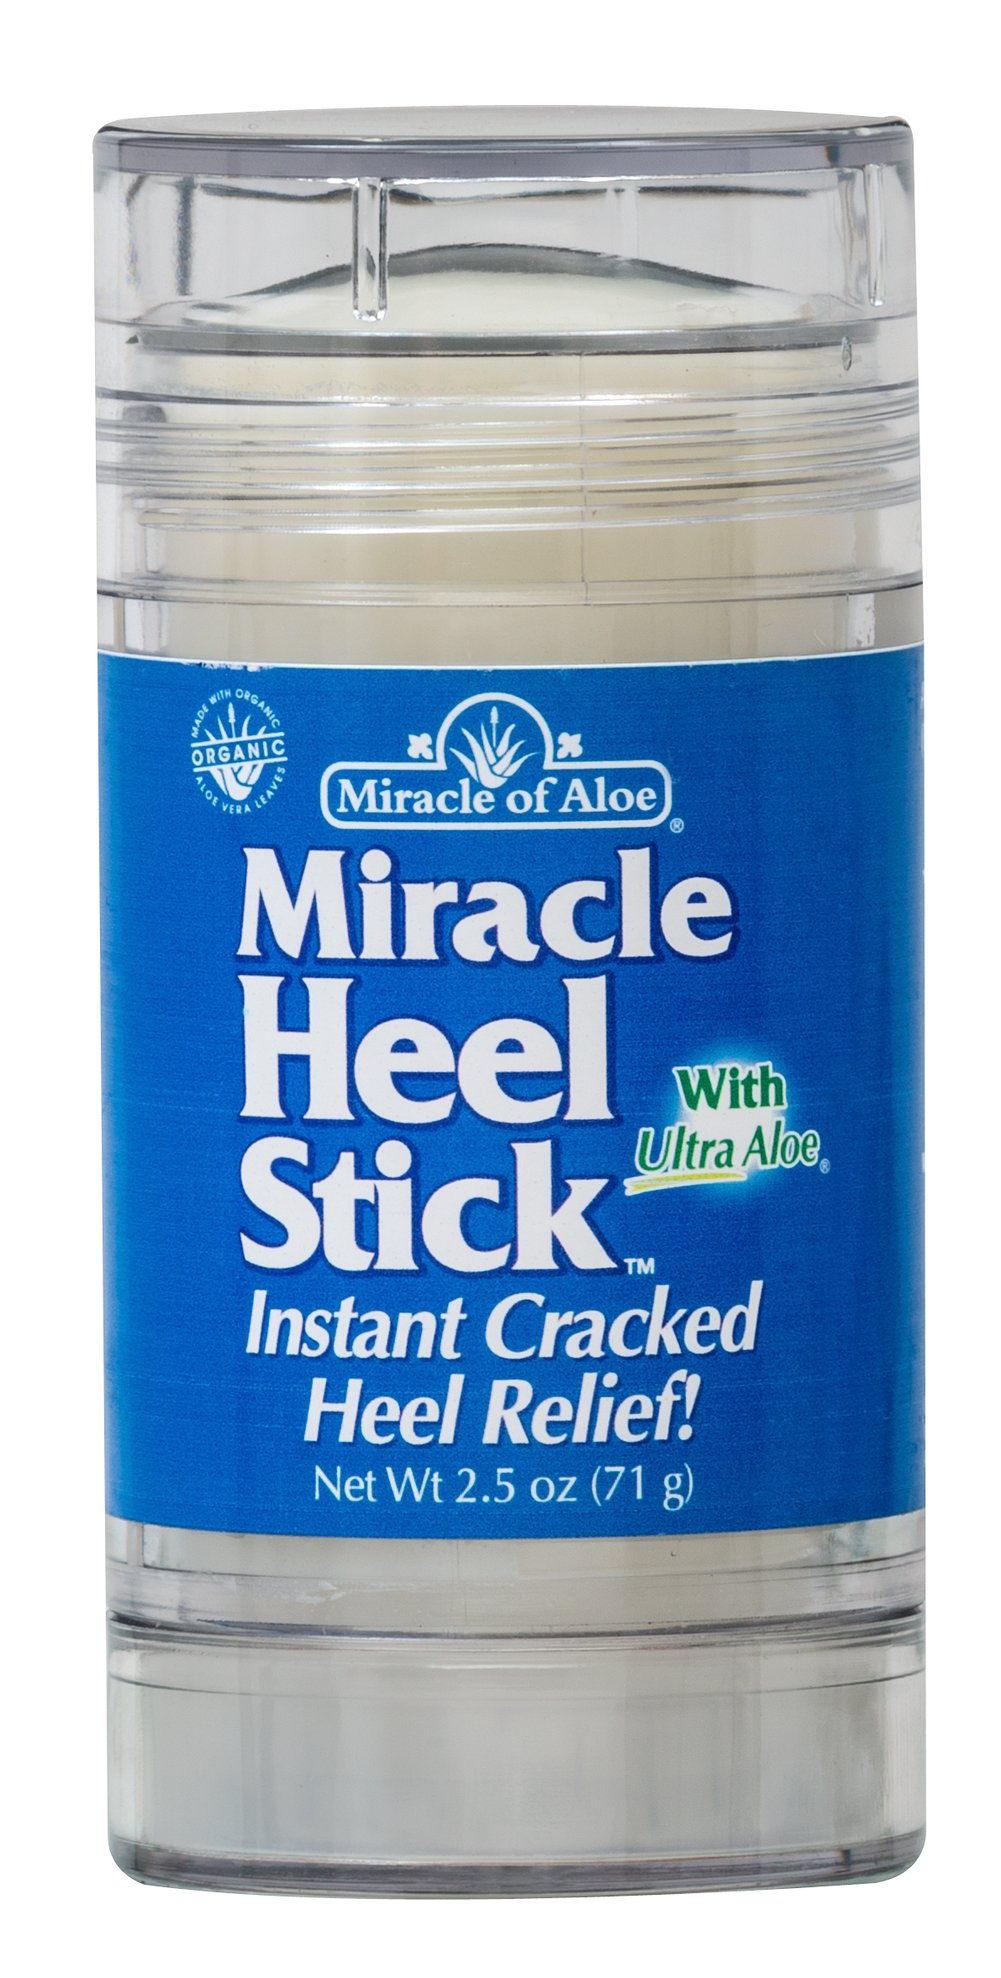 Miracle Heel Stick